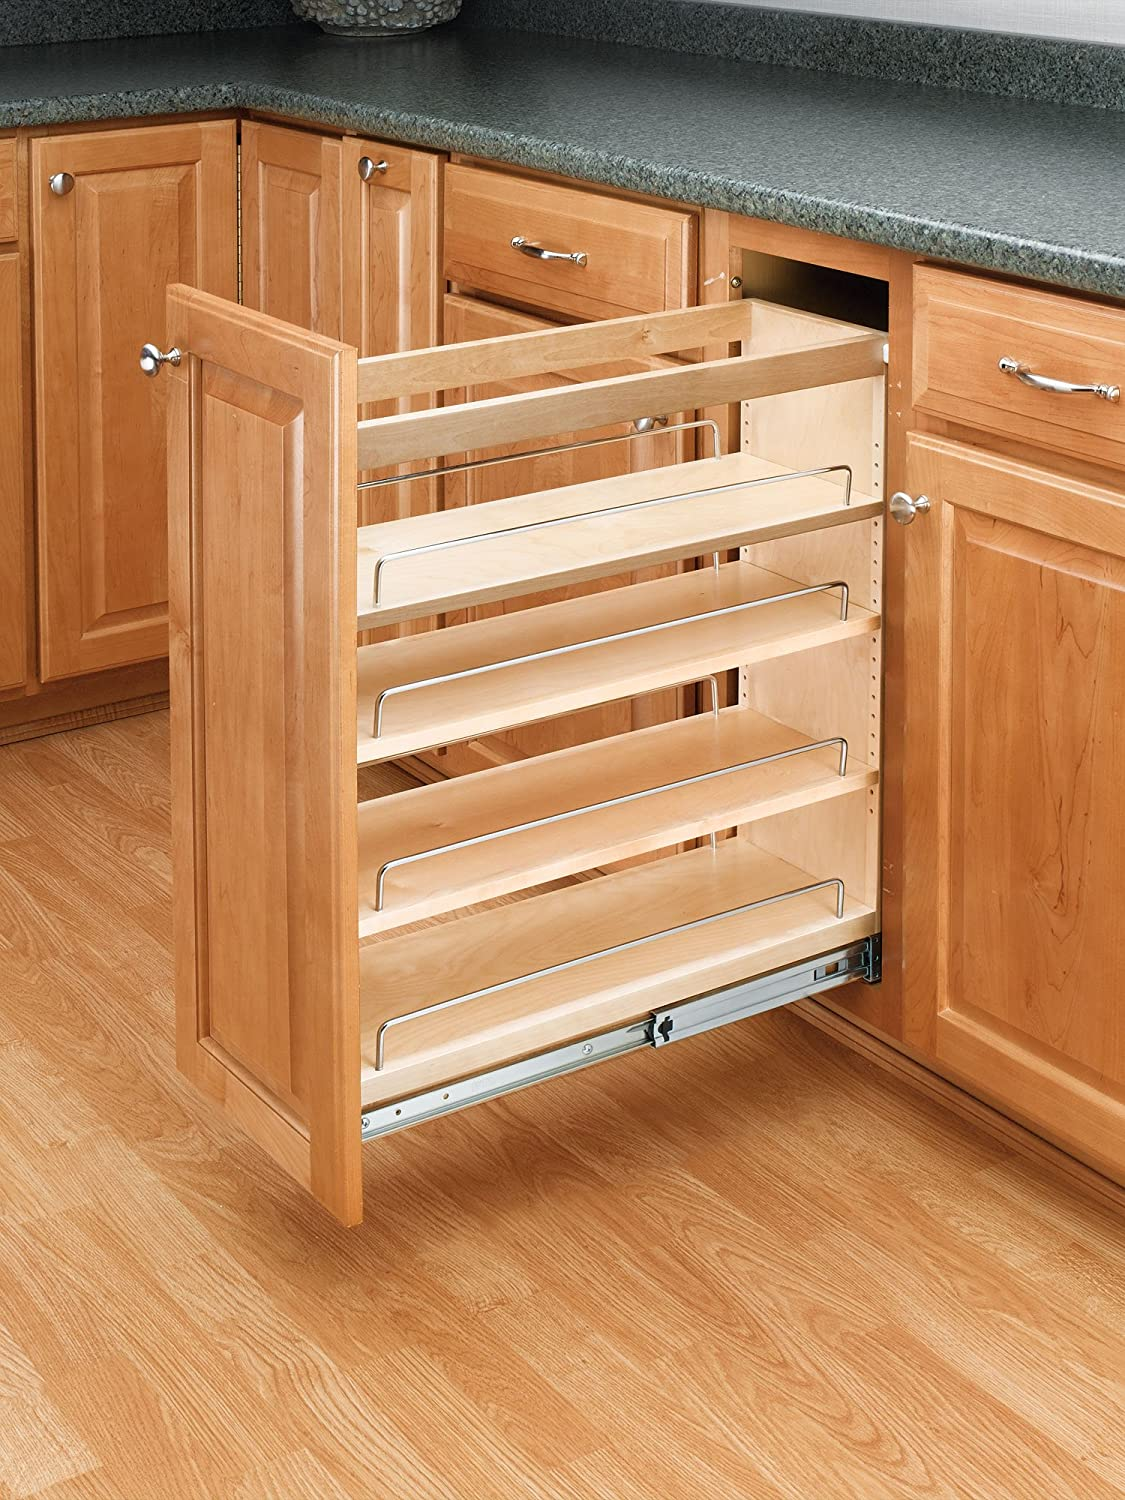 Favorite Amazon.com: Rev-A-Shelf 448-BC-8C Base Cabinet Pullout Organizer  OF67